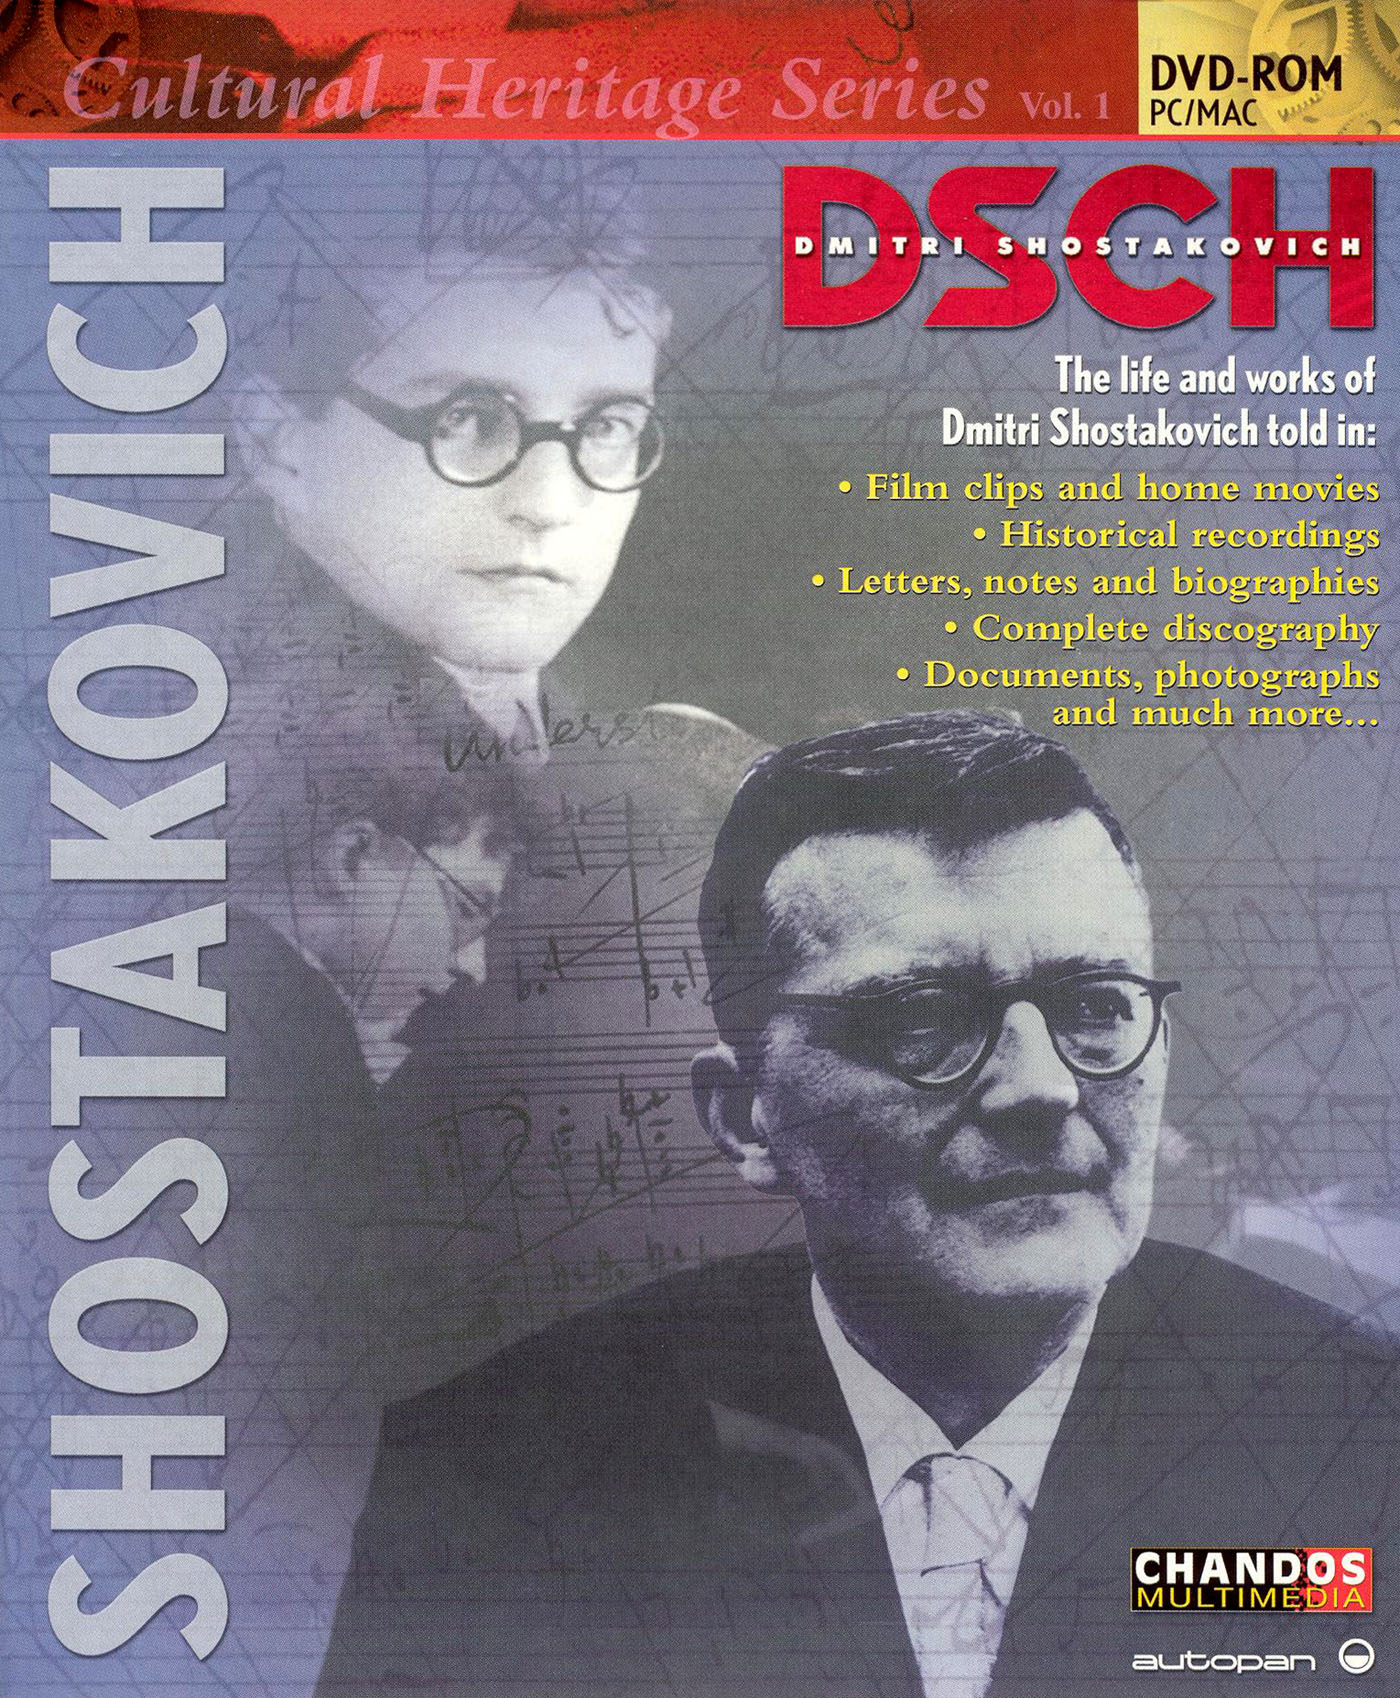 Cultural Heritage Series I: The Life and Works of Dmitri Shostokavich